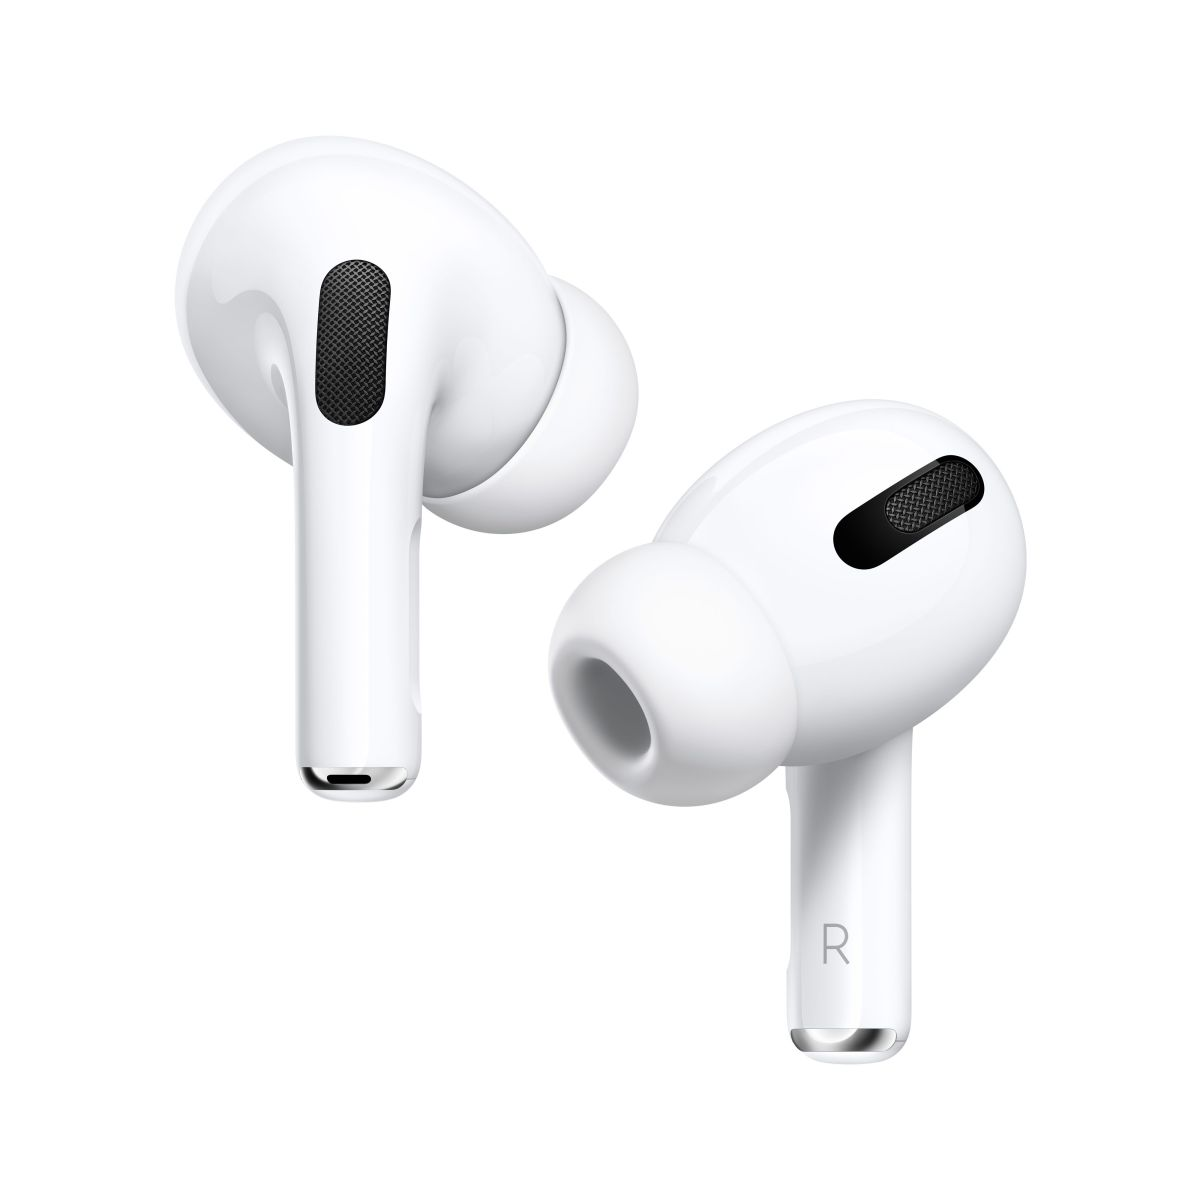 Restock alert: AirPods Pro are back on sale at Walmart for only $169